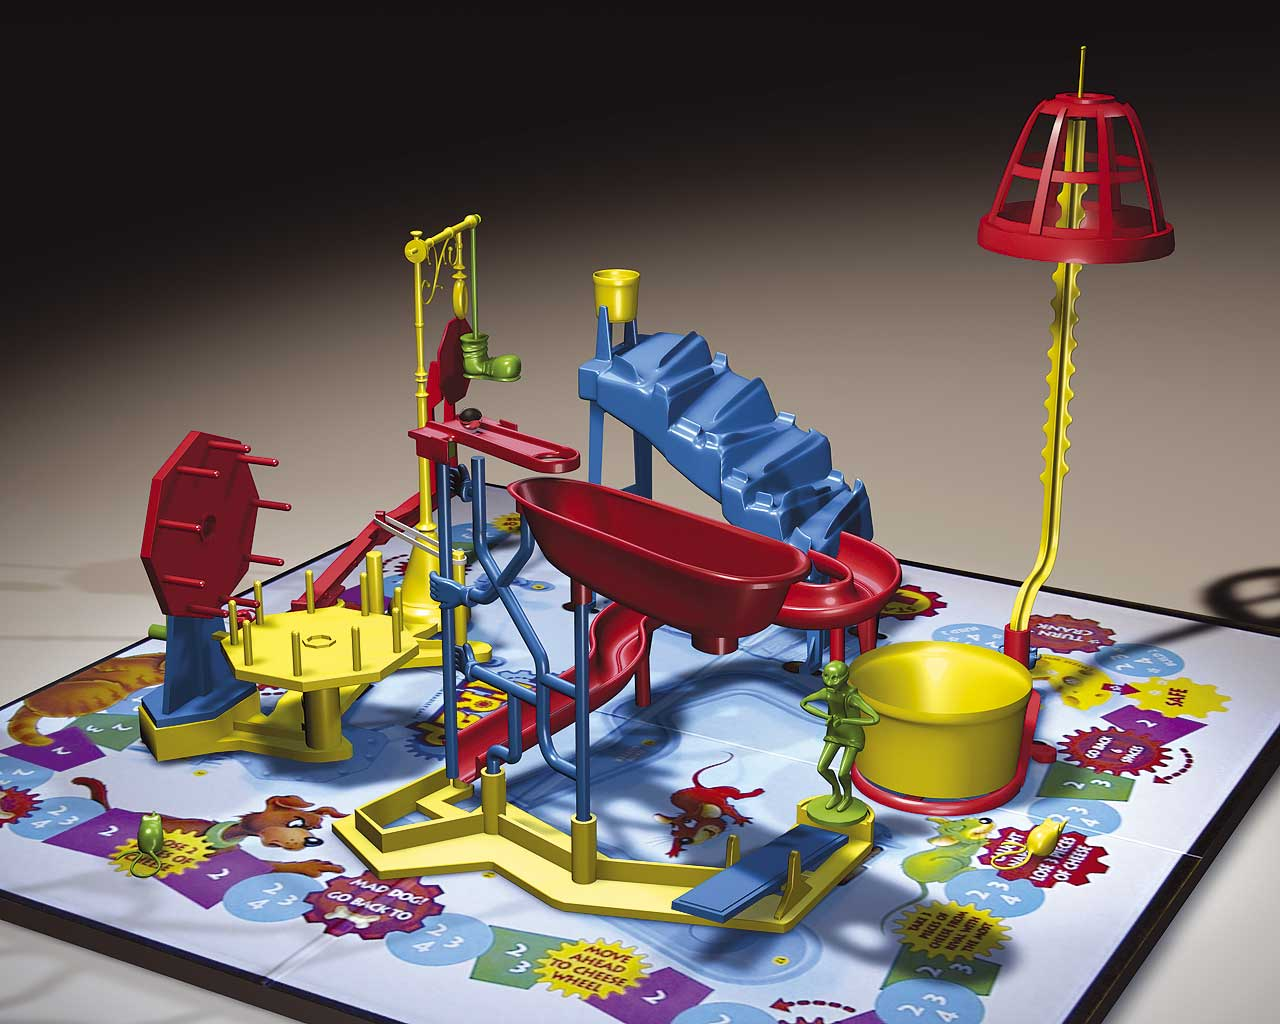 mousetrap simple machine